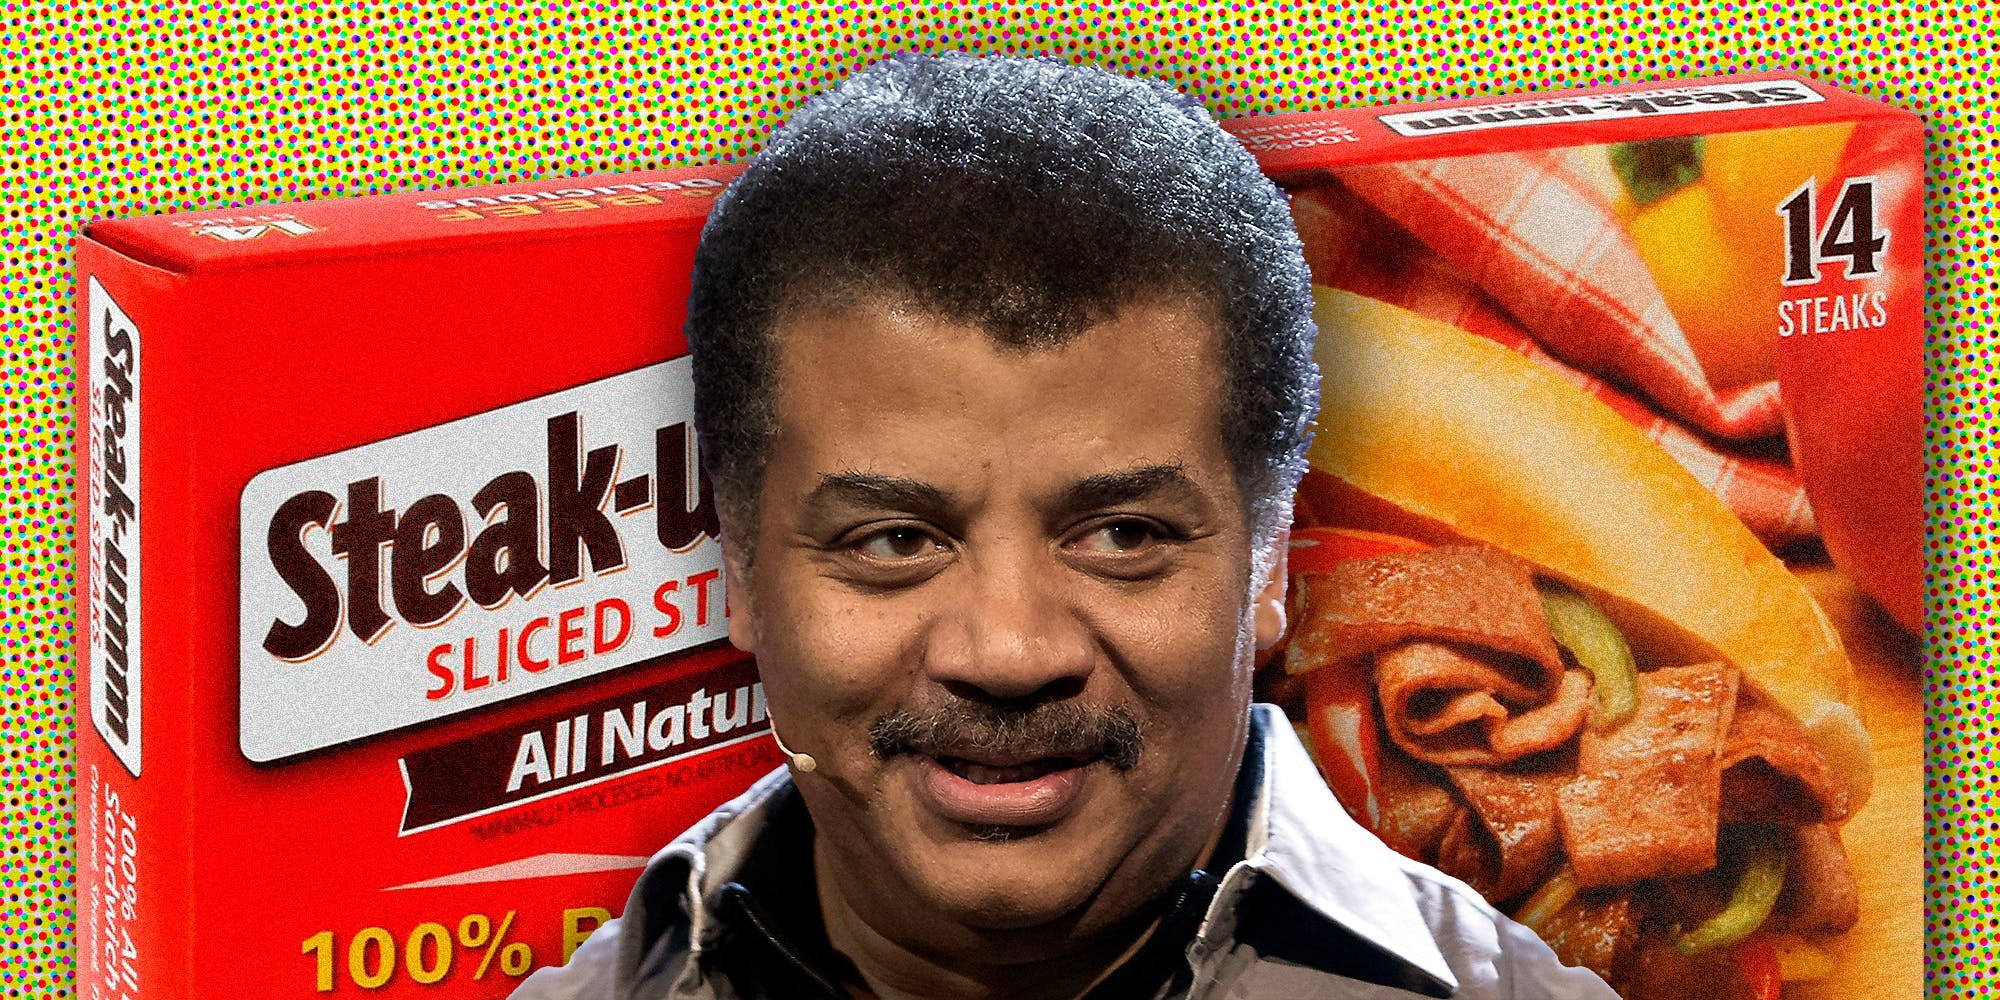 Neil deGrasse Tyson and a box of Steak-umm.